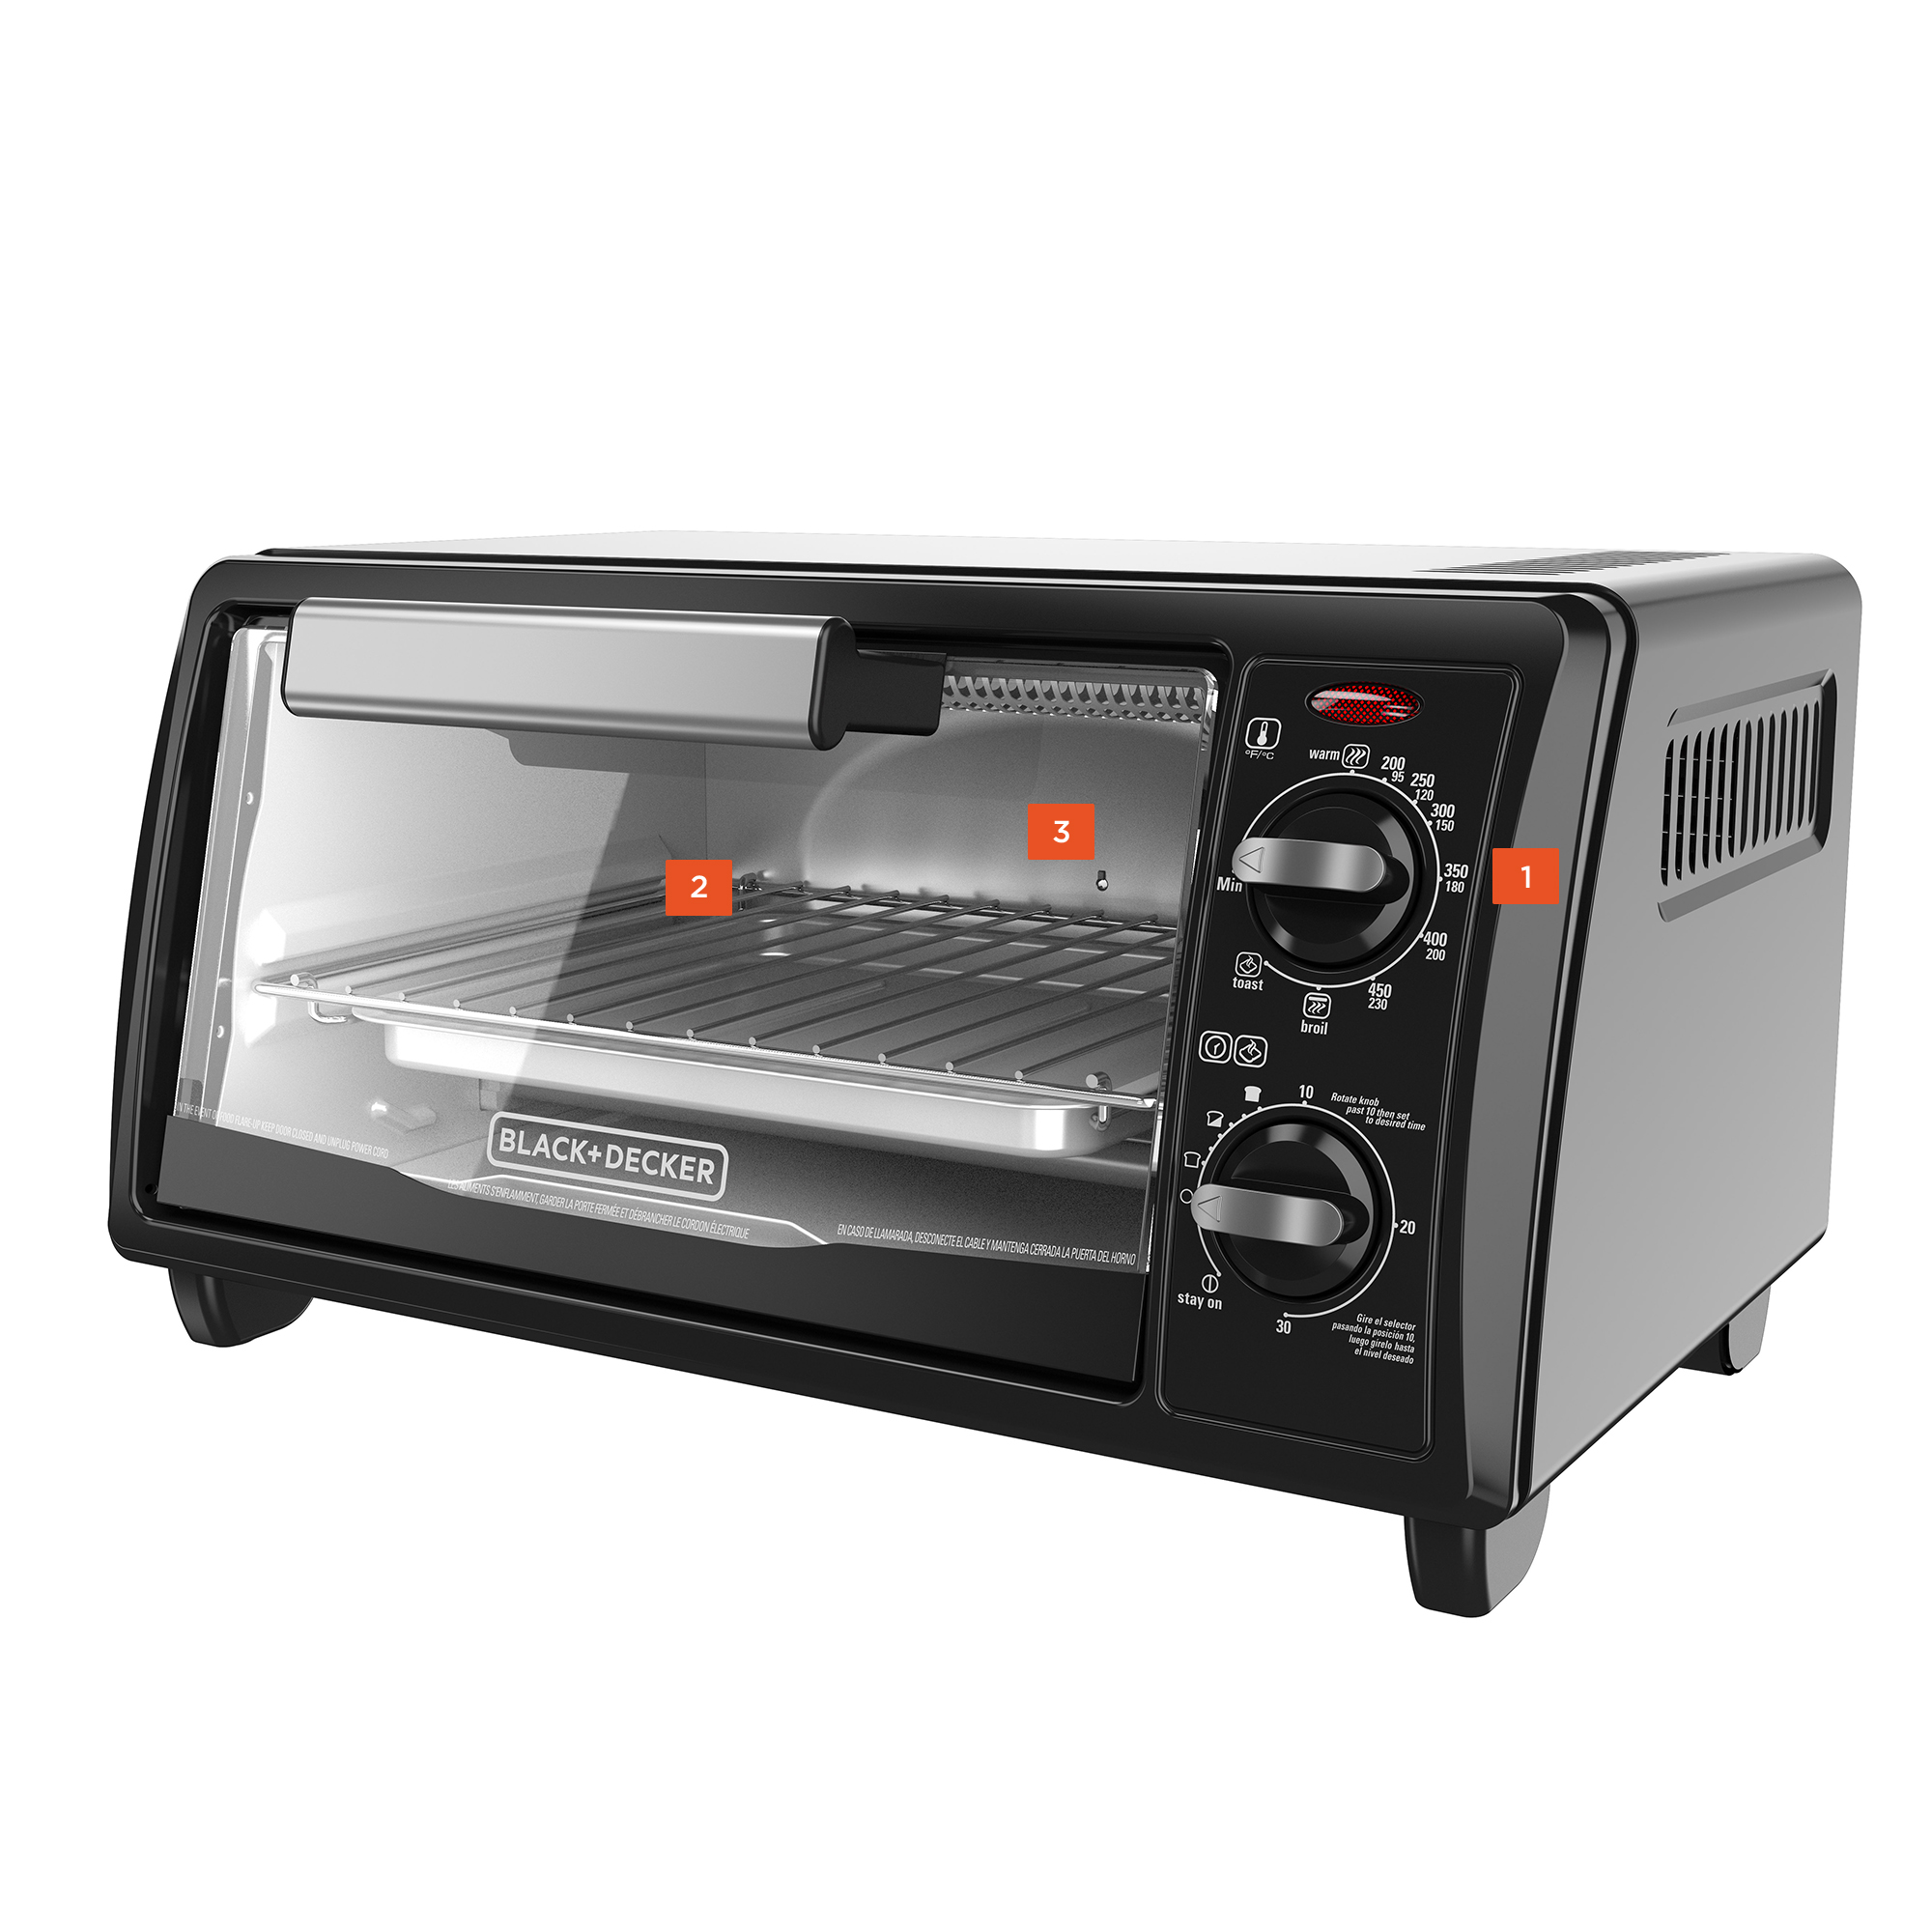 TO1342B.ashx?h=500&la=en&mh=500&mw=527&w=500 convection and toaster ovens cooking appliances black decker  at reclaimingppi.co